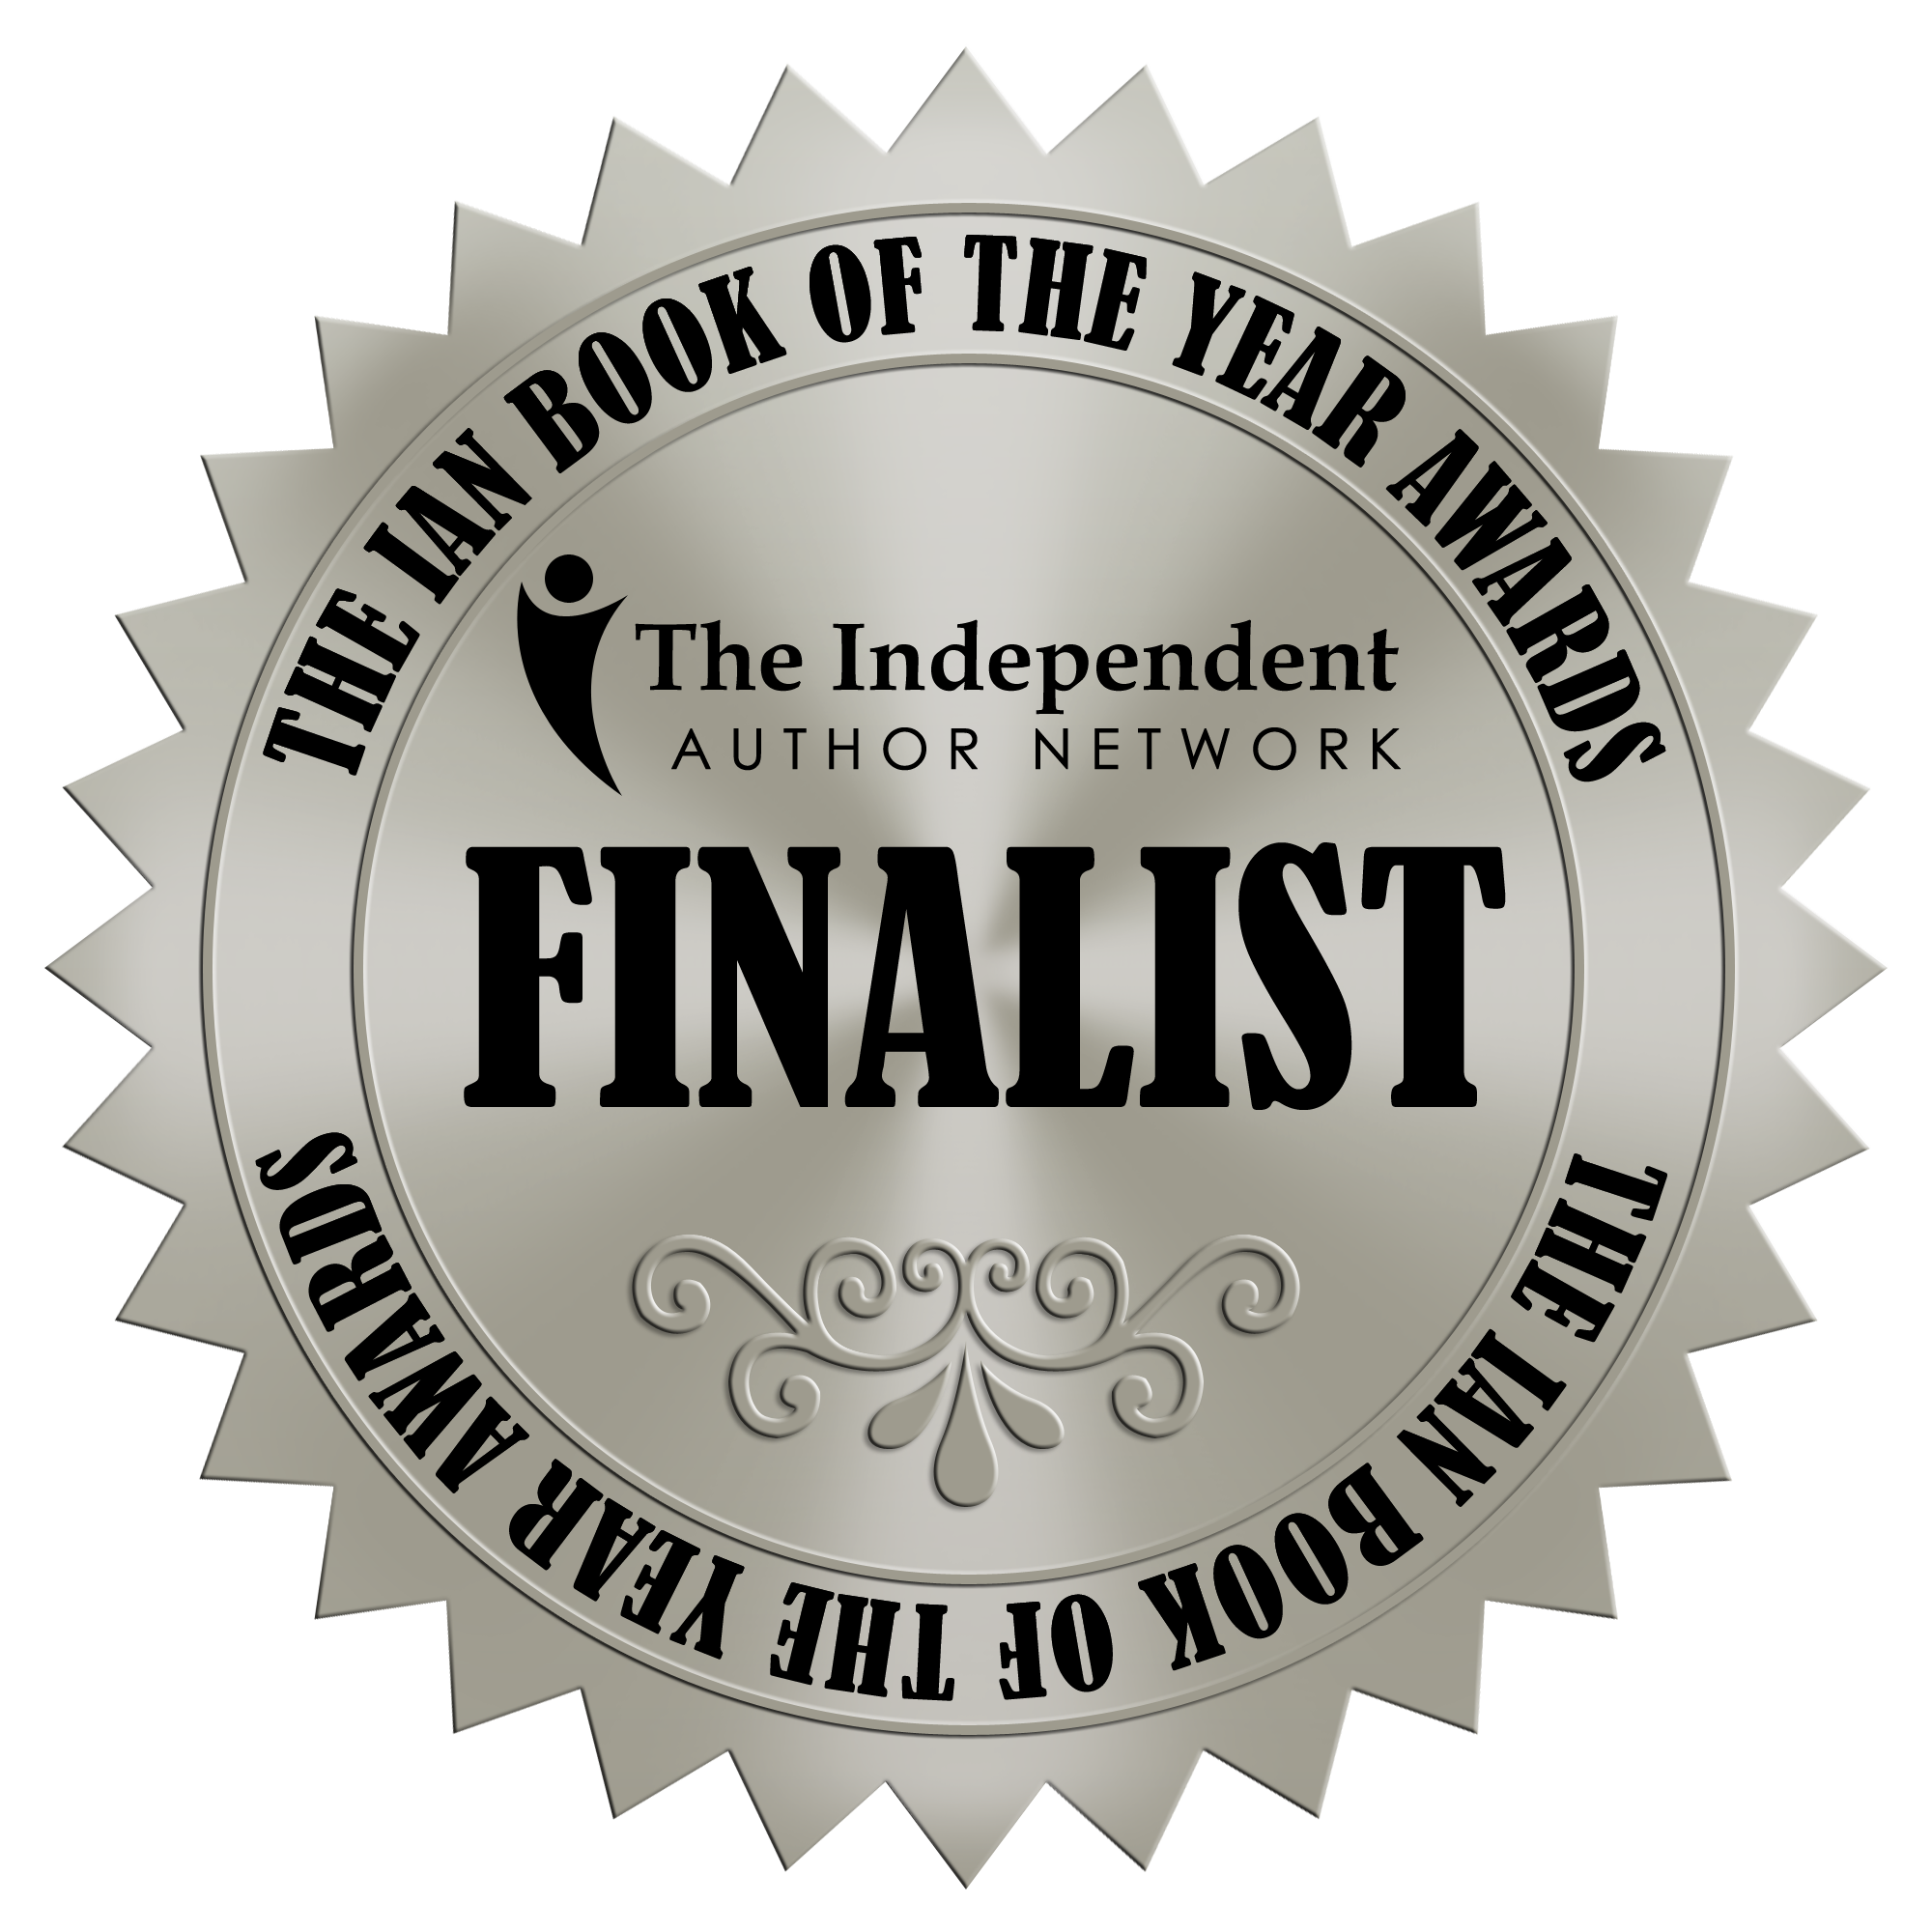 Independent Author Network 2020 Book of the Year - Finalist in Paranormal/Supernatural Fiction